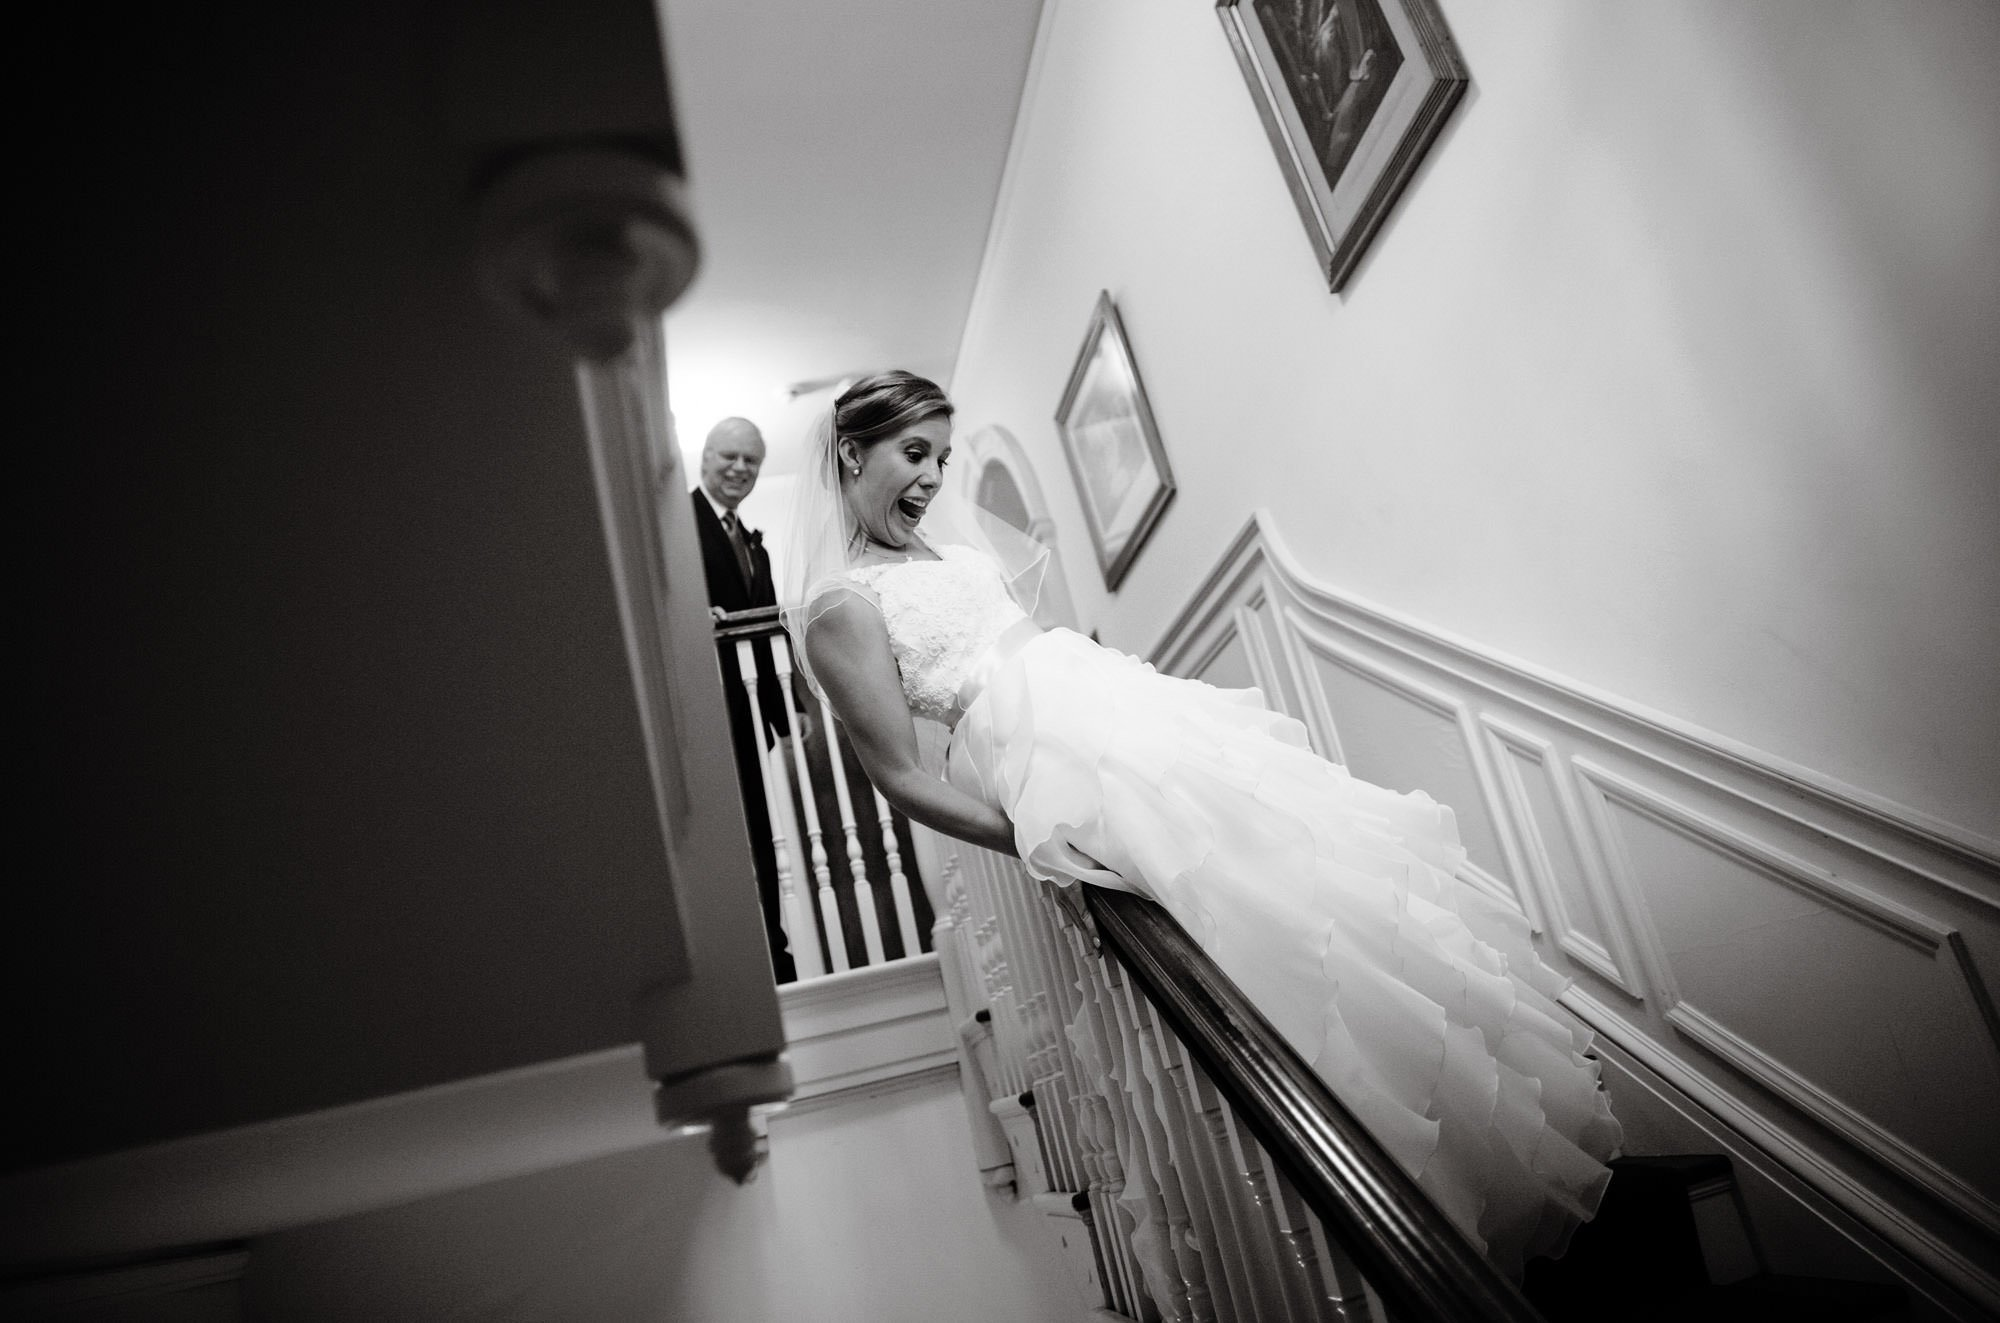 The bride slides down the bannister at Strong Mansion.